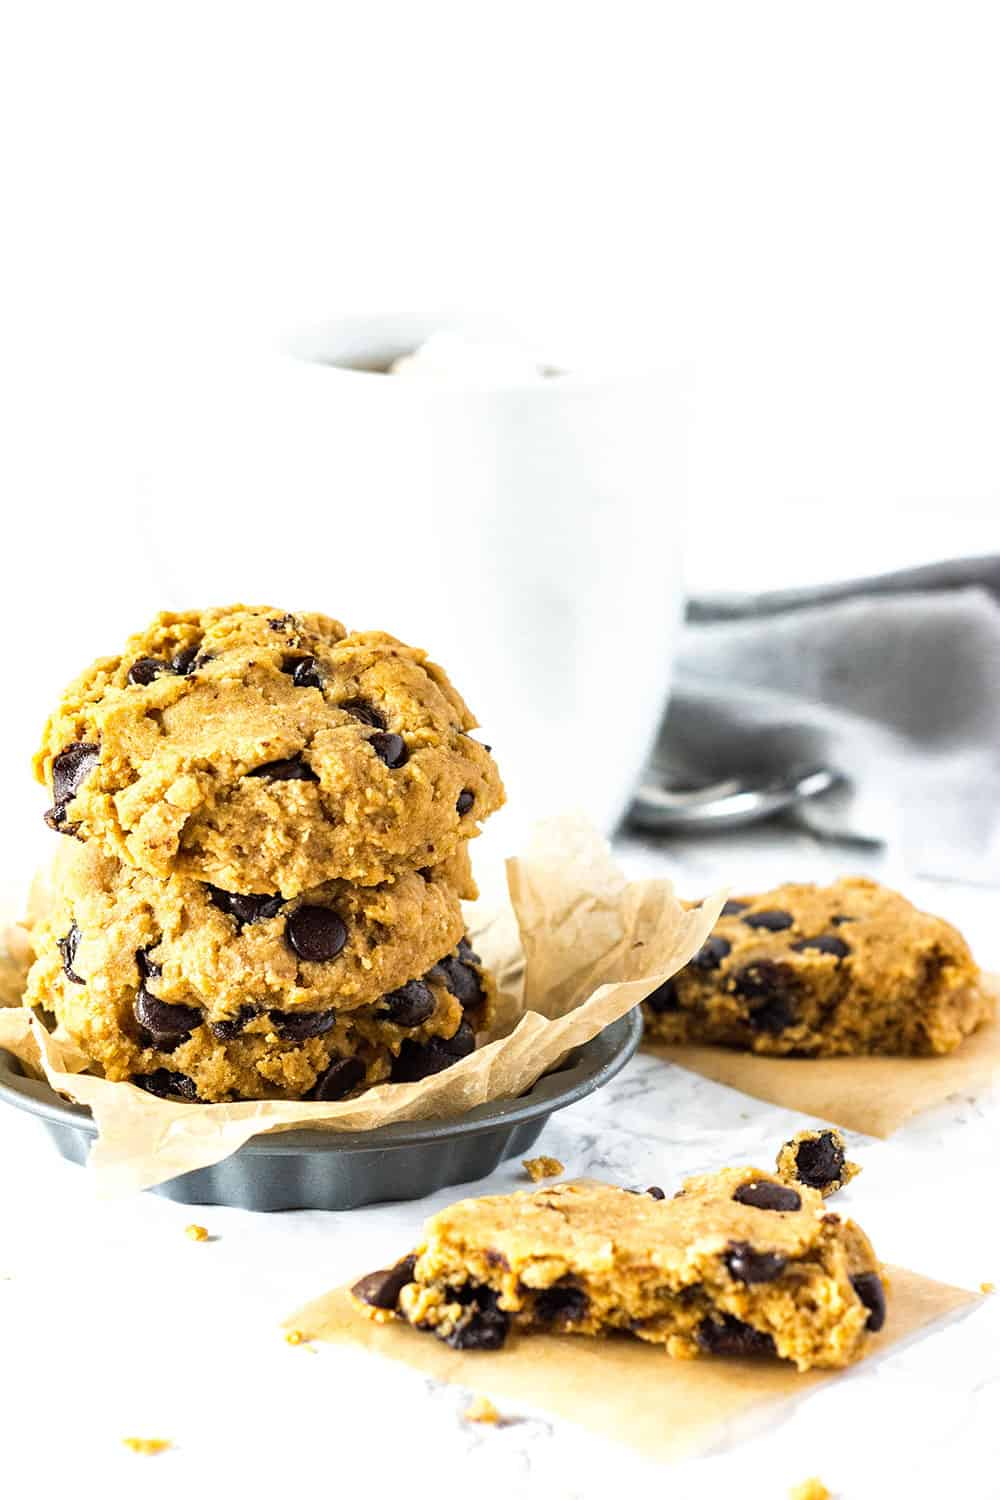 Vegan & Gluten-Free Chocolate Chip Cookies